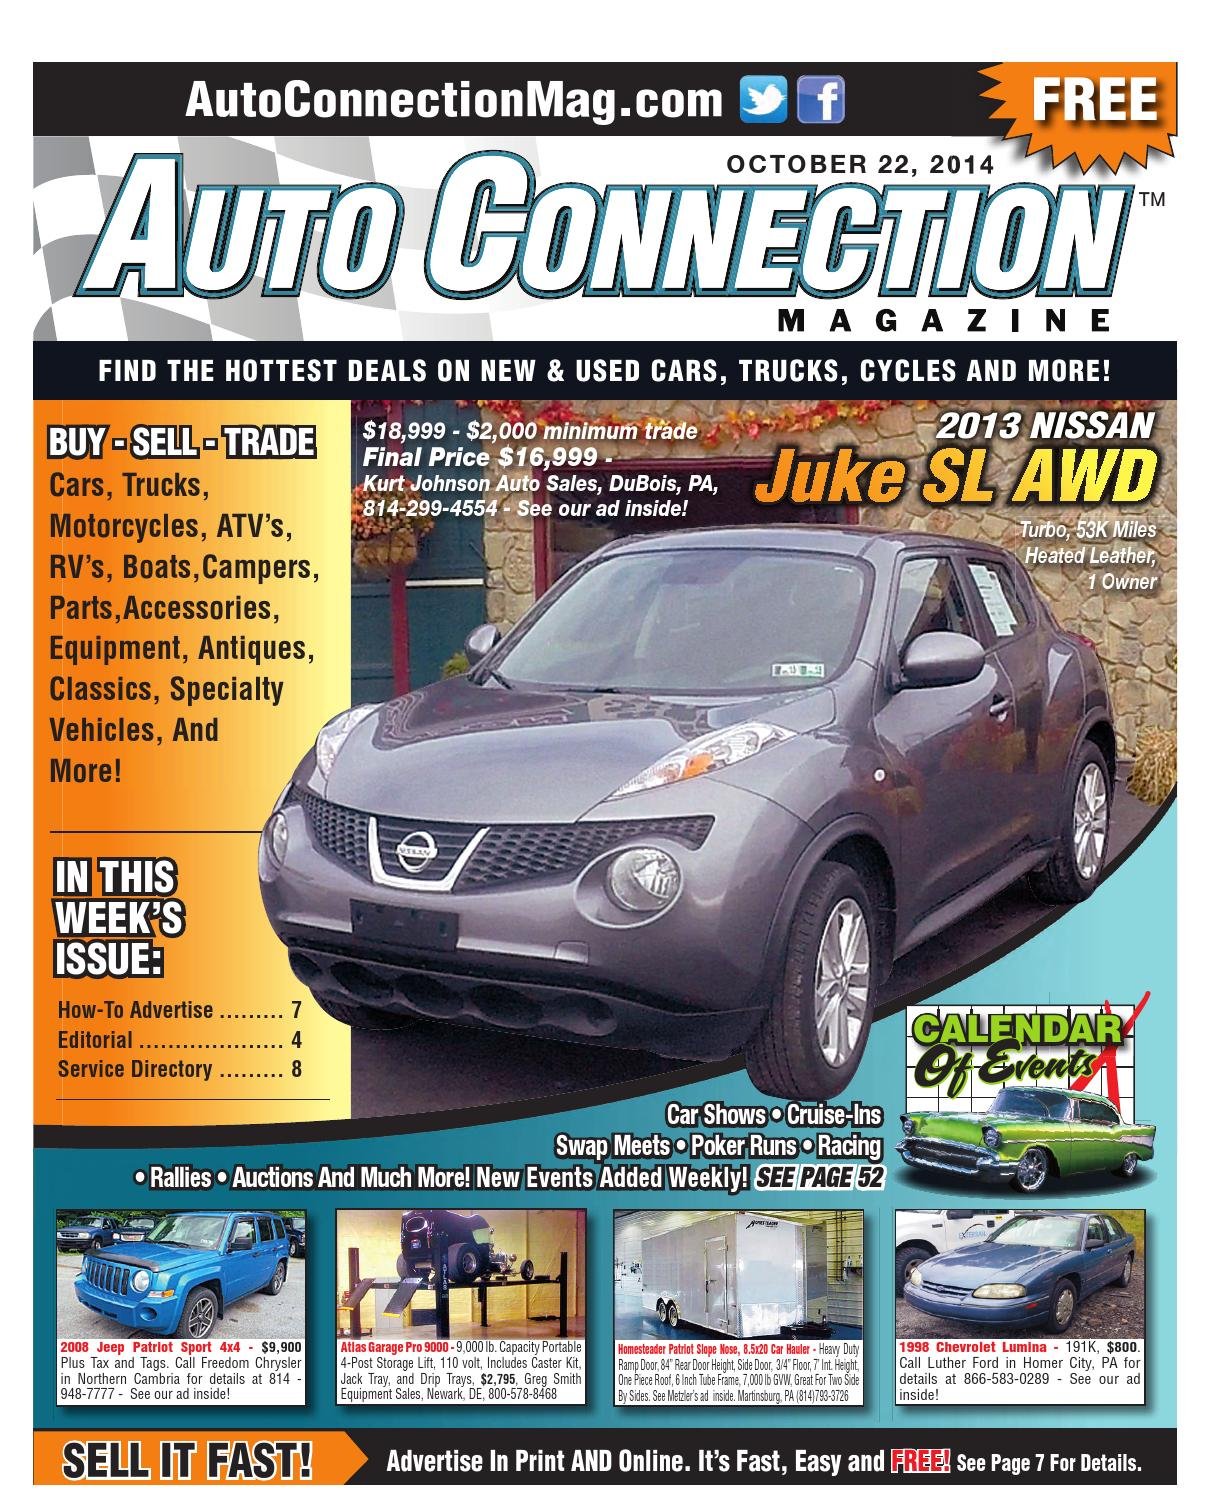 10-22-14 Auto Connection Magazine by Auto Connection